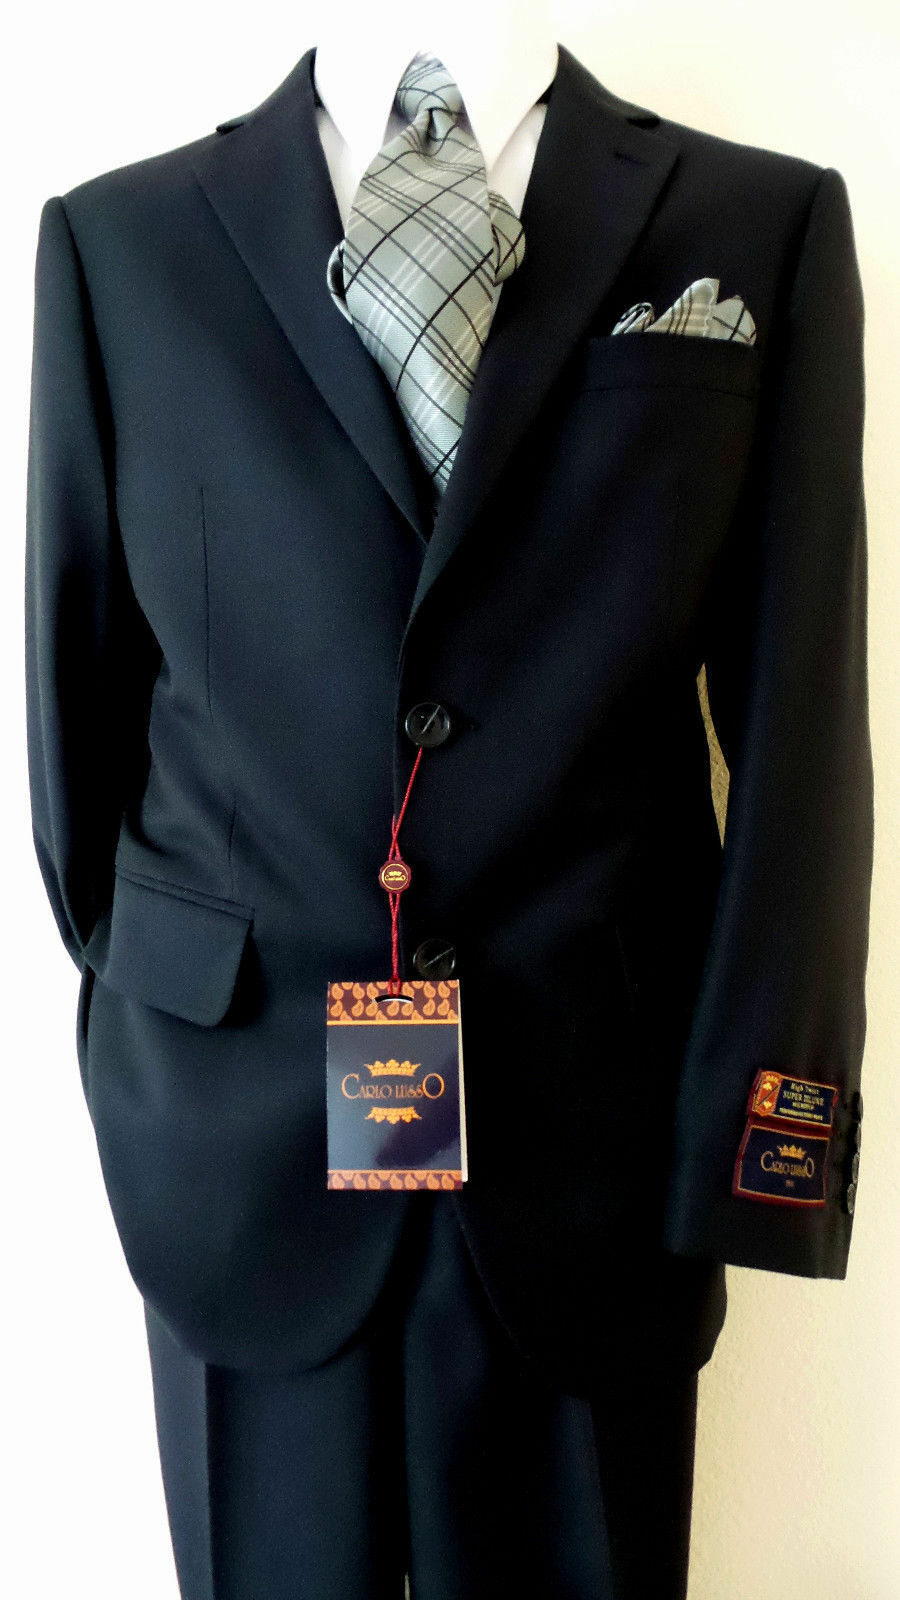 CARLO LUSSO Solid Dark Navy bluee 40S 34Euro Slm 2 Buttons Men's Suit Flat Front